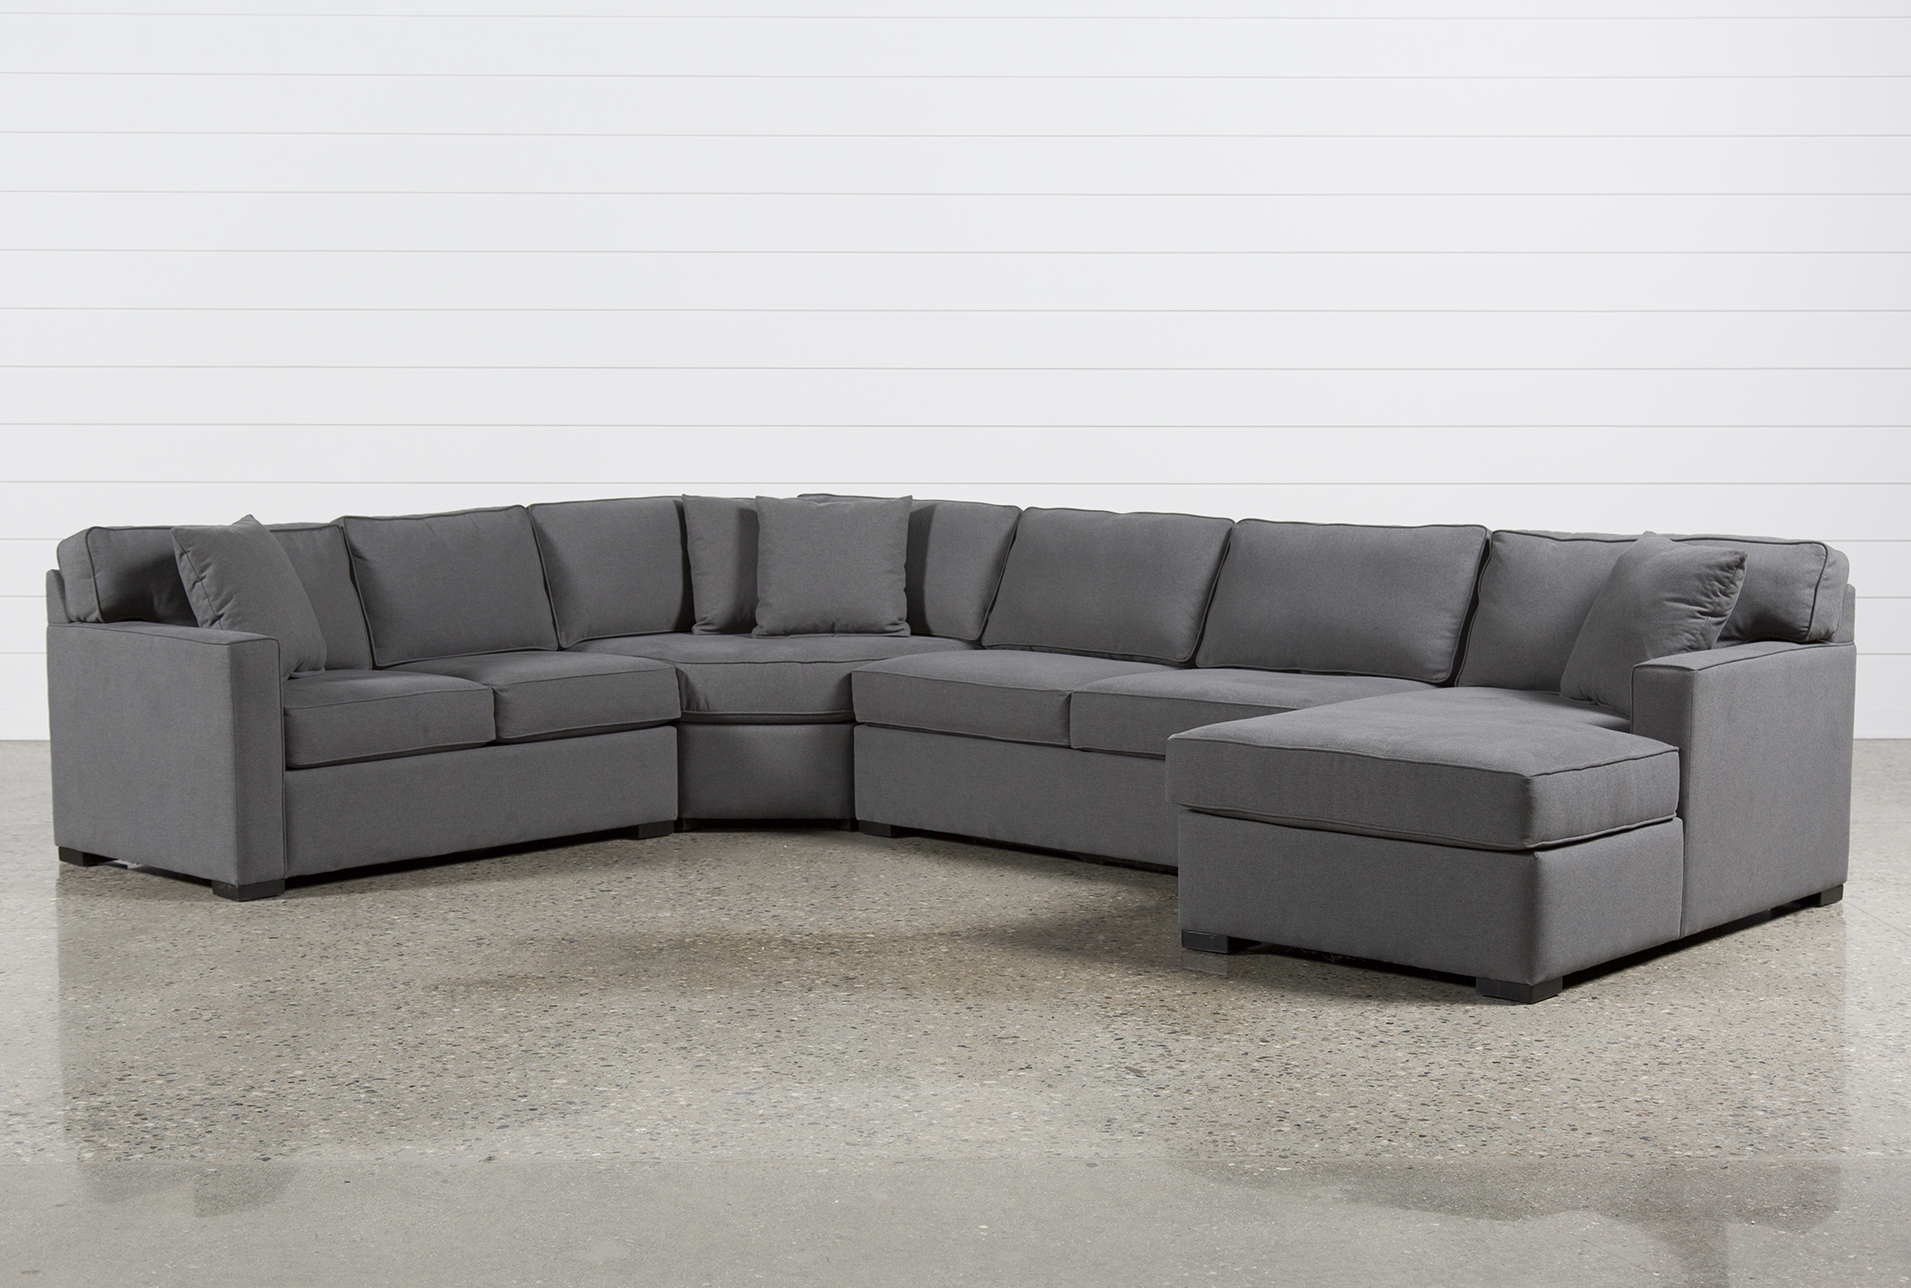 sectionals sectional sofas living spaces rh livingspaces com sectional sofa with chaise and cuddler sectional sofa chaise lounge